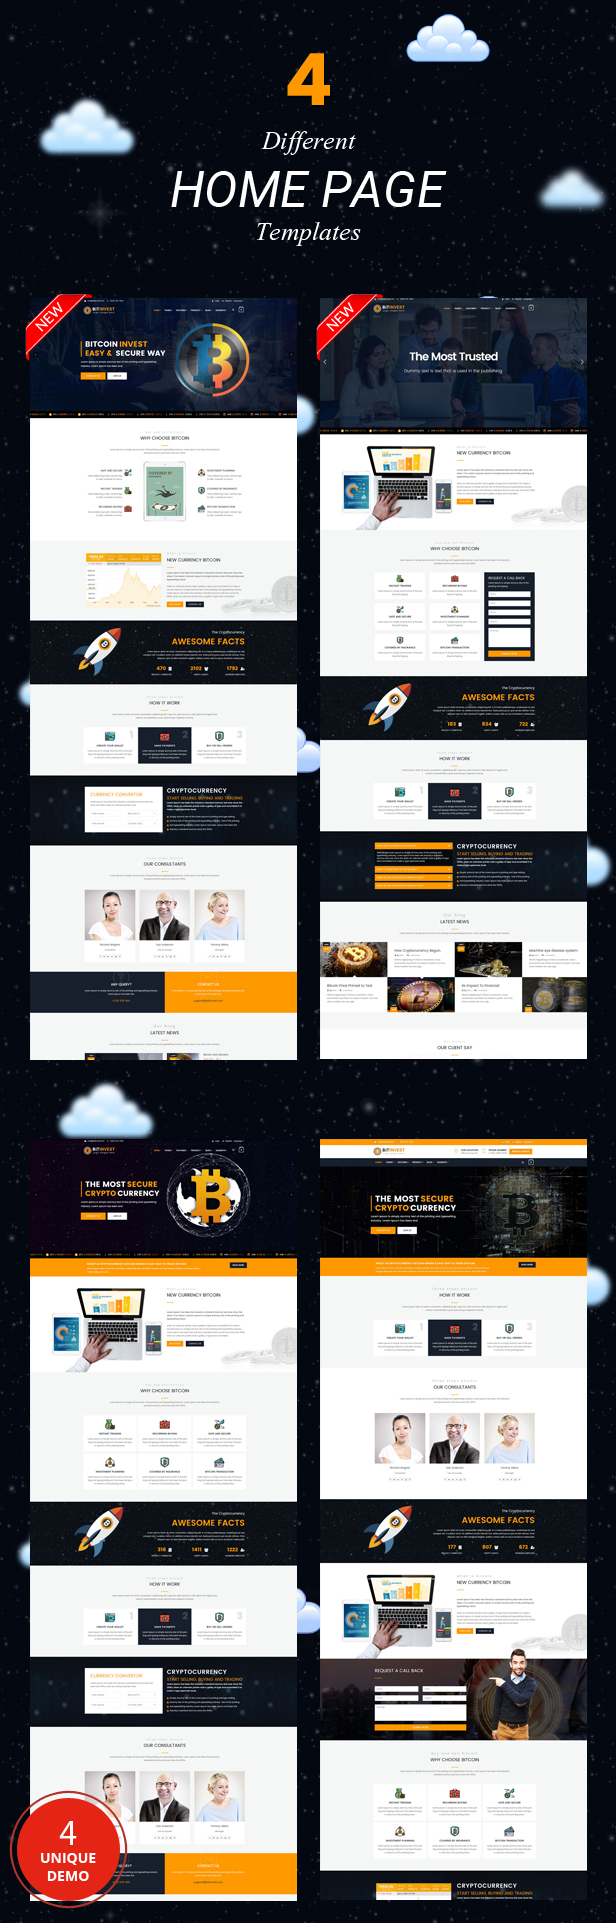 Bitcoin Crypto Currency Template - 2